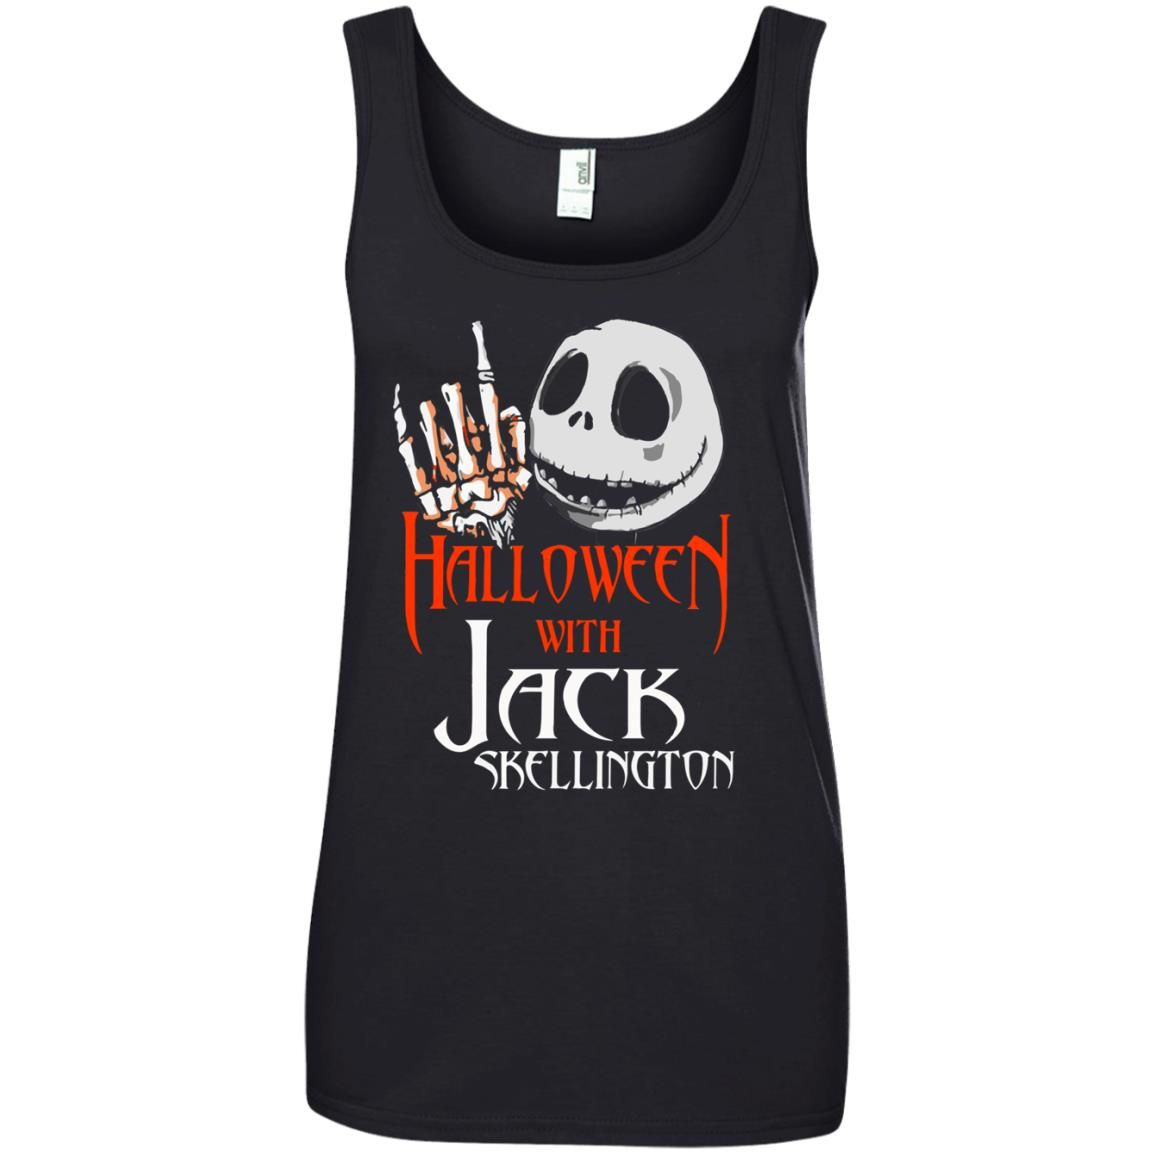 image 1384 - Halloween with Jack Skellington shirt, tank top, sweater